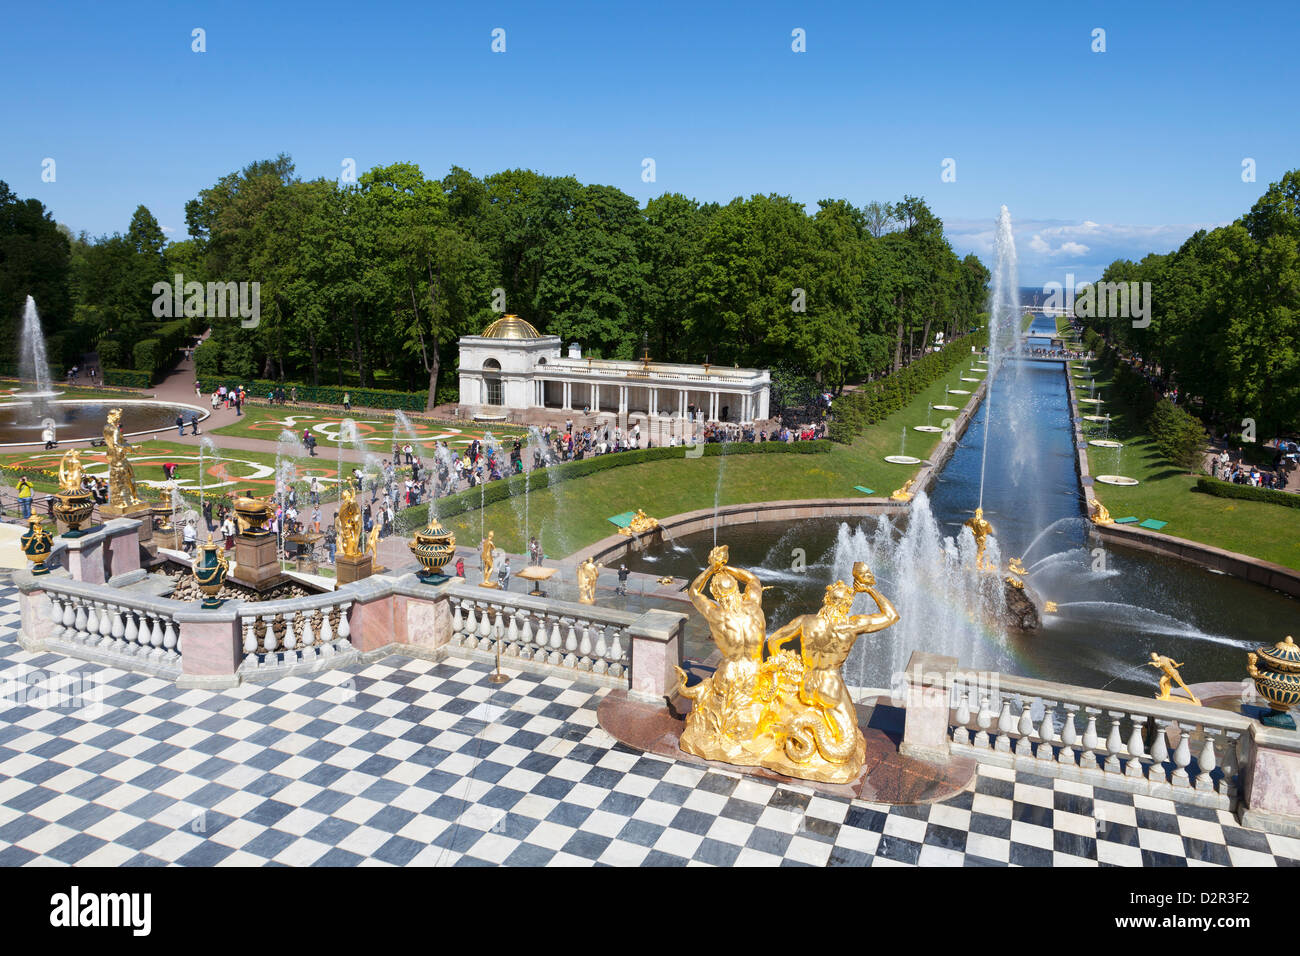 Golden statues and fountains of the Grand Cascade at Peterhof Palace with the Marine Canal, St. Petersburg, Russia, Stock Photo